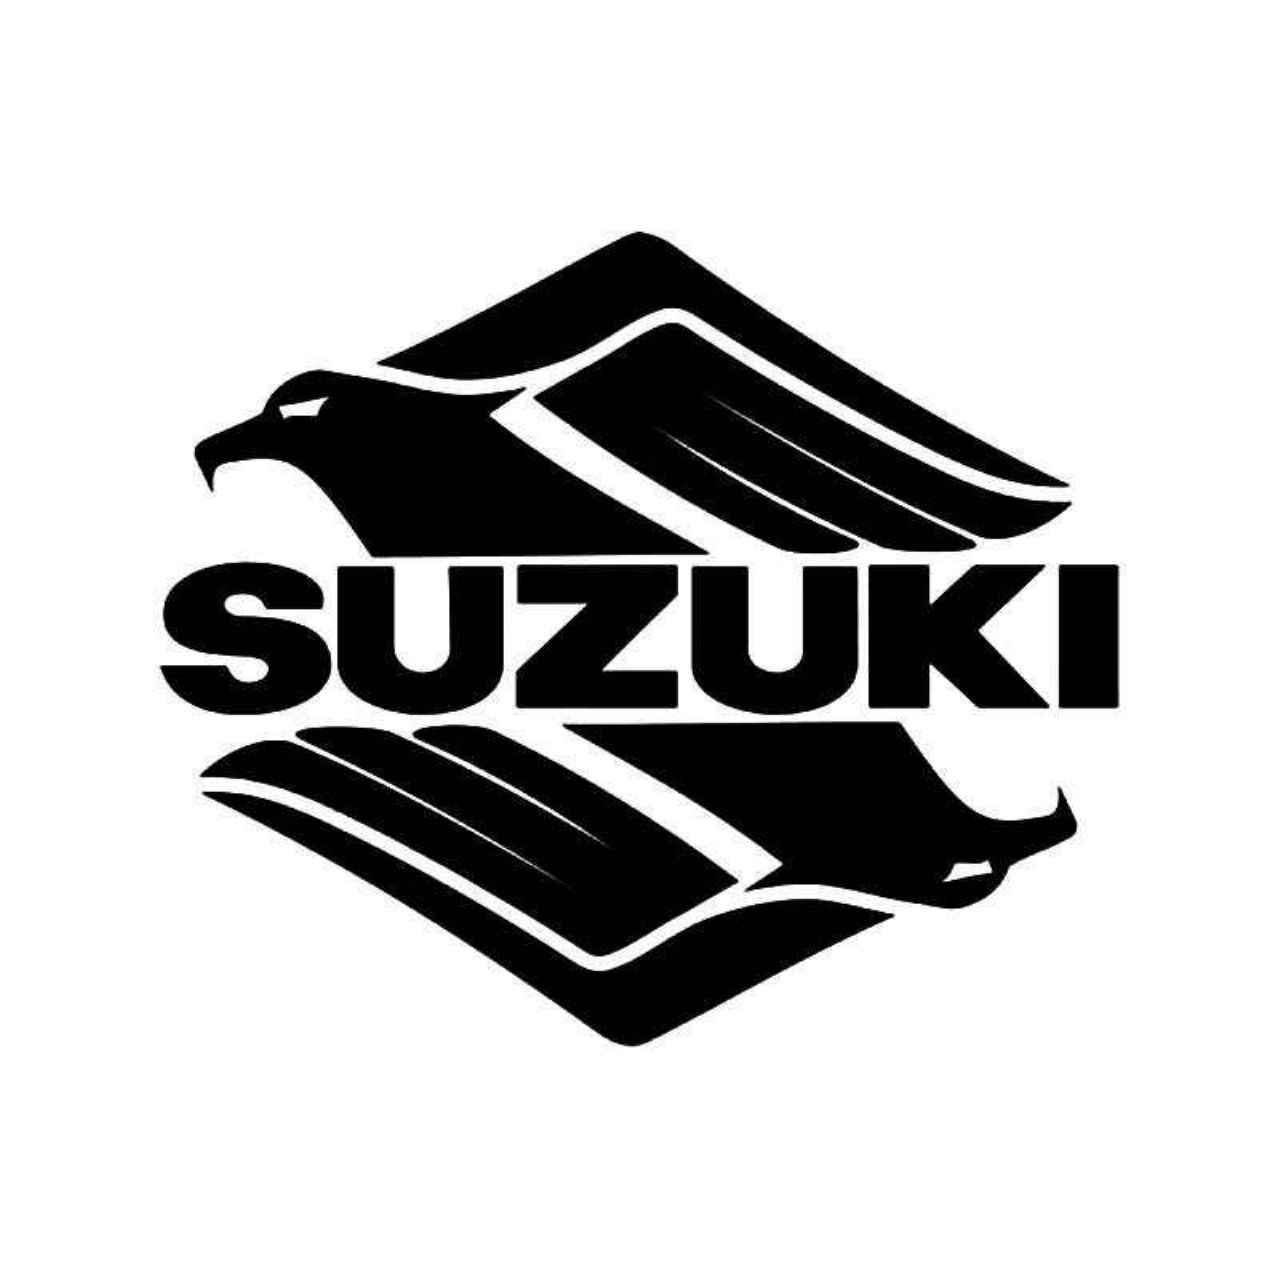 Bicycle design · suzuki intruder motorcycle vinyl decal sticker ballzbeatz com garage logo oldschool scrambler